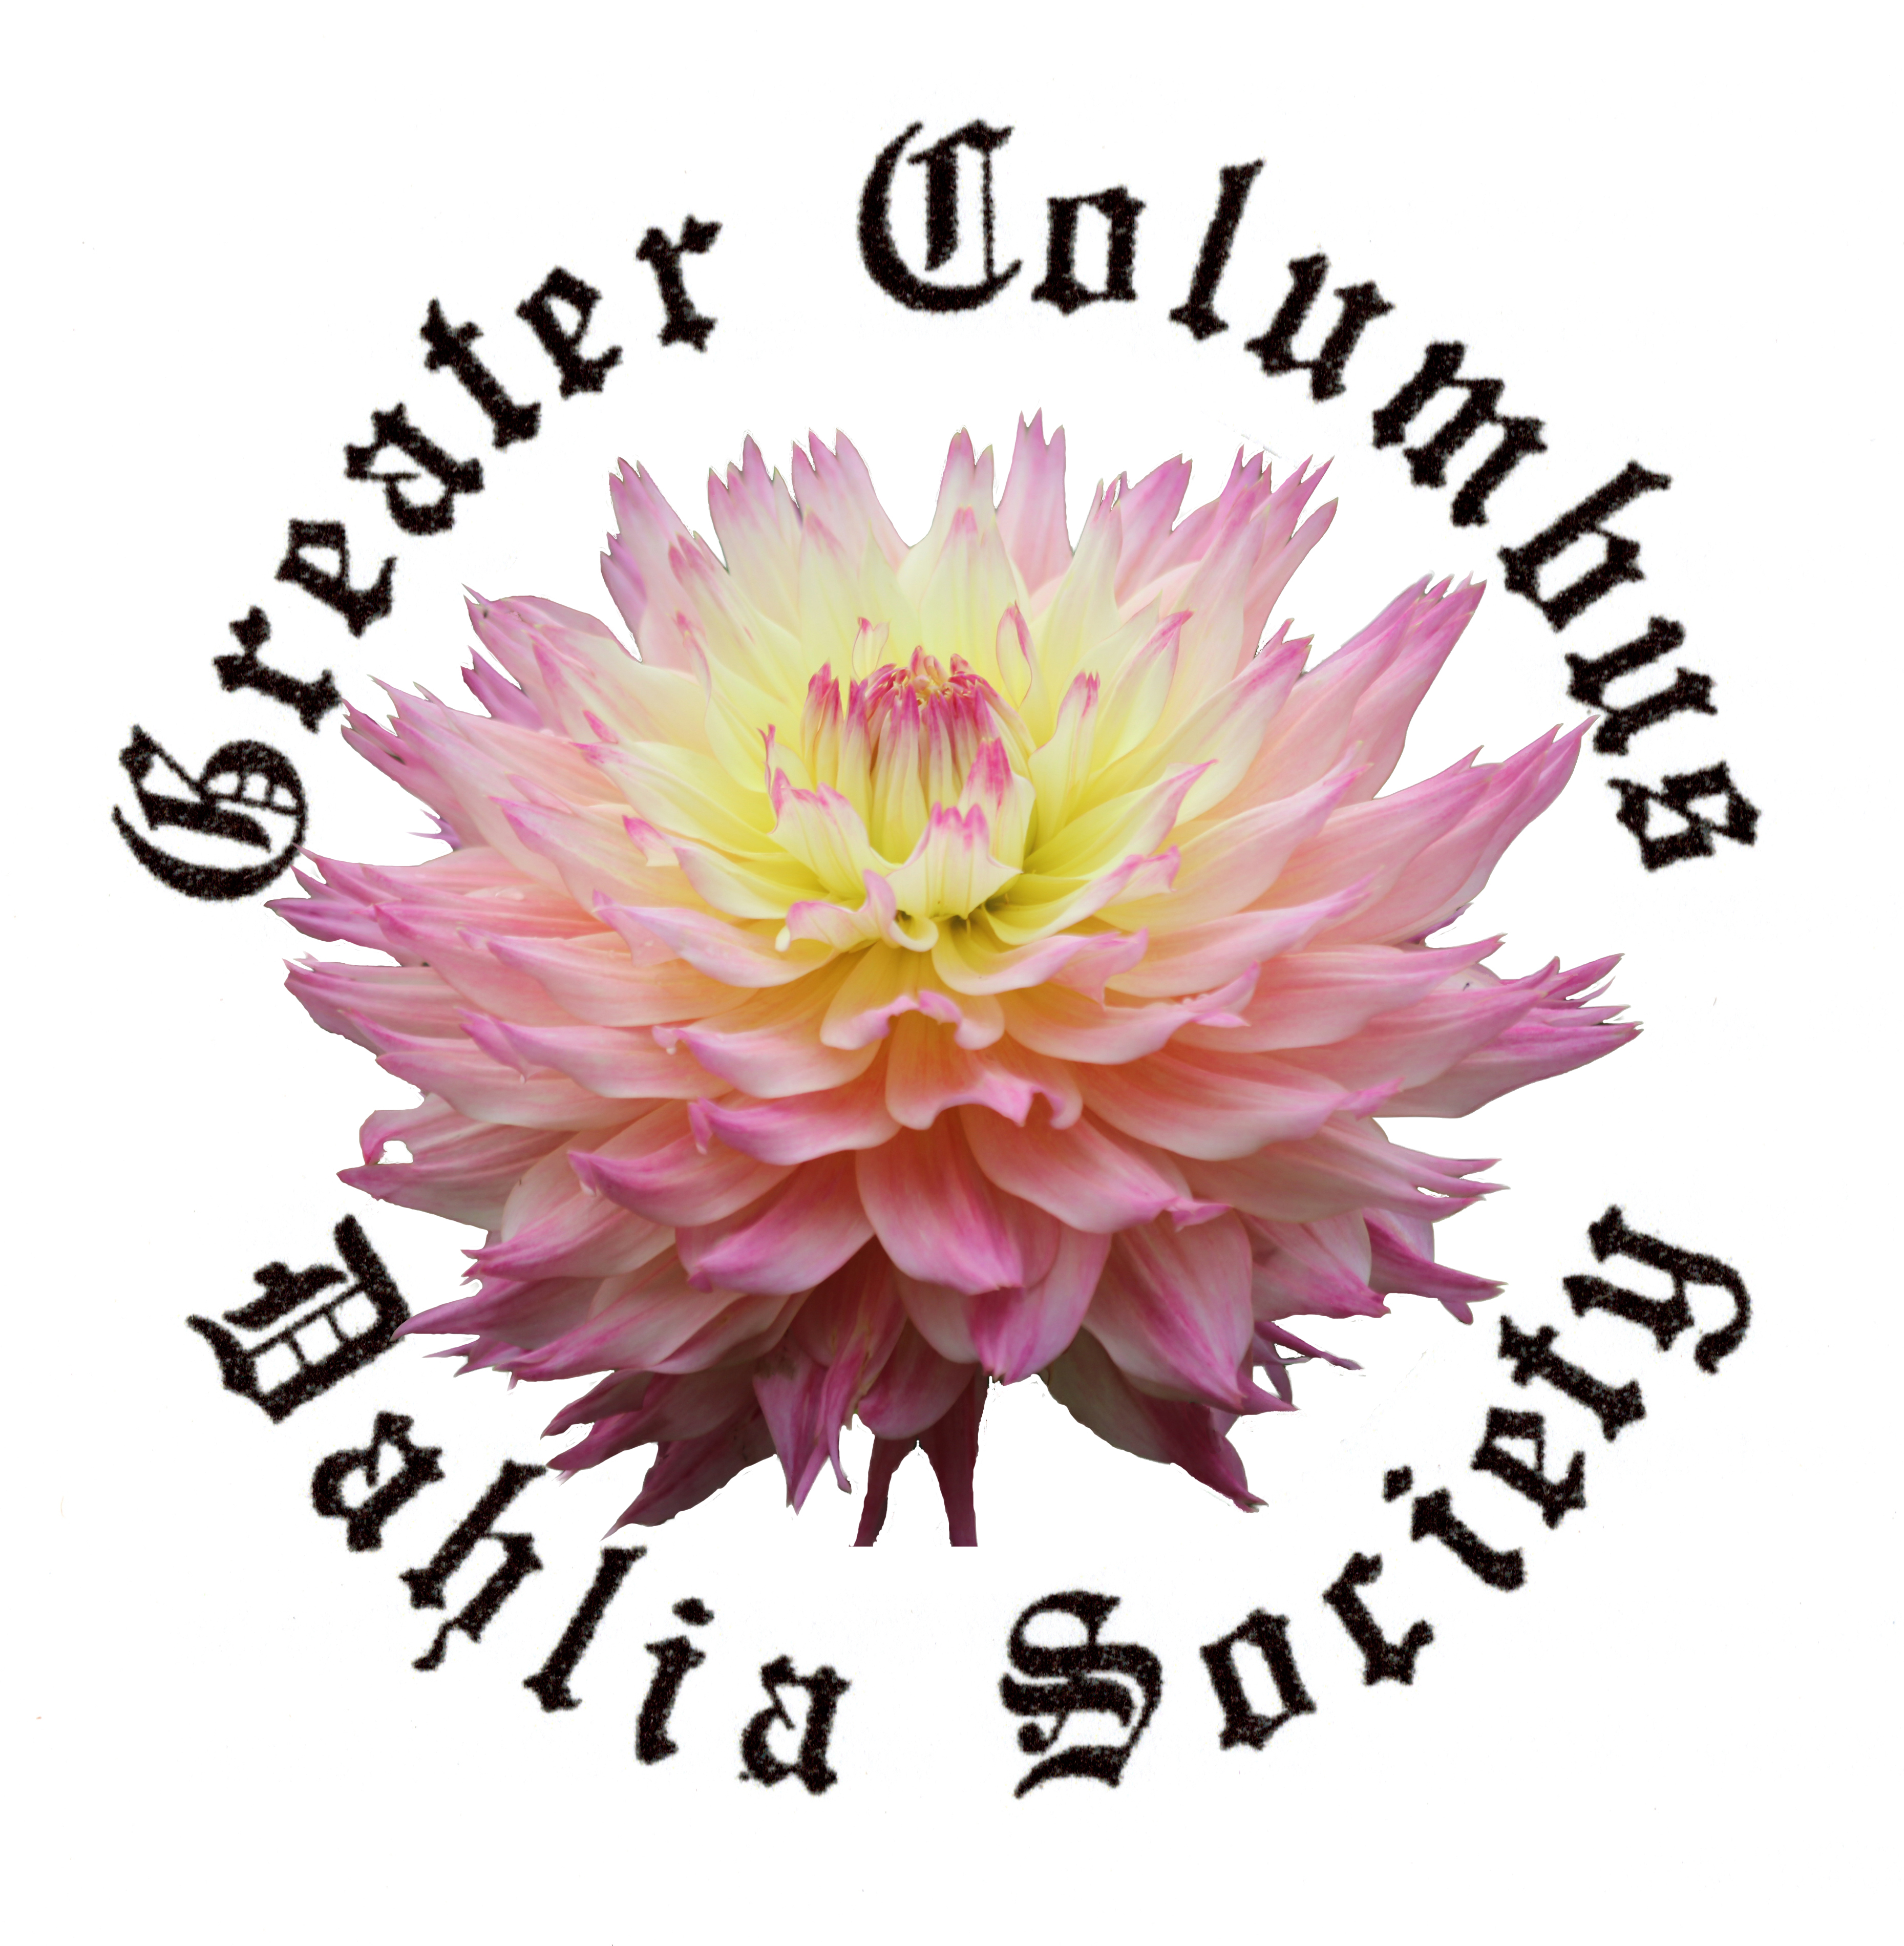 Greater columbus dahlia society gcds the dahlia is grown world wide for its myriad of shapes sizes and vibrant colors the greater columbus dahlia society gcds was founded in 1964 to izmirmasajfo Gallery